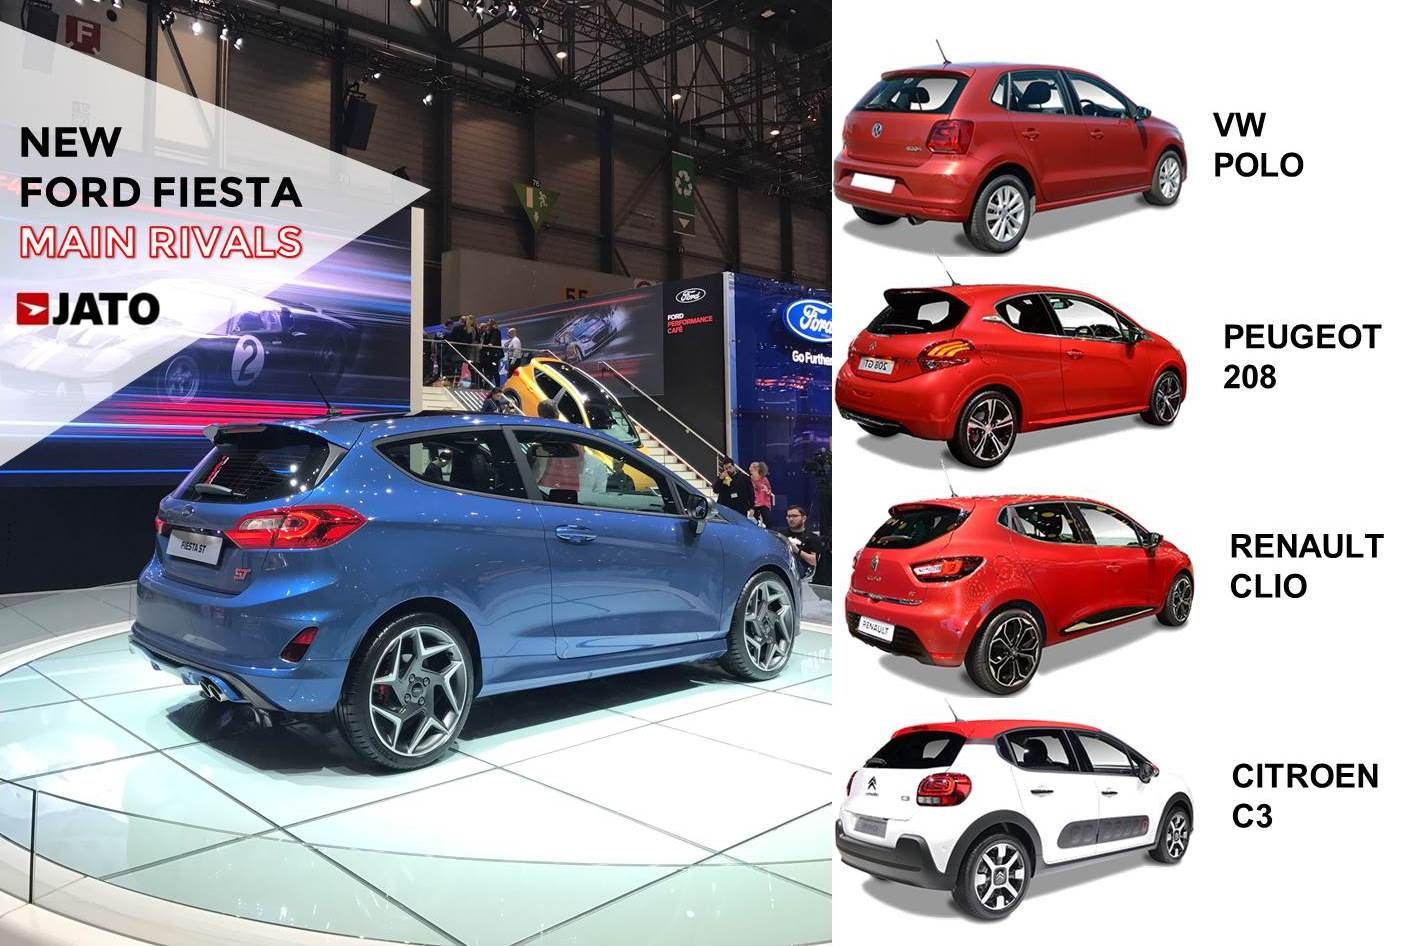 this new generation is going to continue the success of the current Fiesta leading the segment in 2018-2019. Ford's intentions of going upscale with the new Fiesta will prove it was worth it following the trend we've seen in this segment. The registrations of subcompacts priced above 20,000 euro are posting higher % increases than those priced between 13k-20k euro. As it has happened in the compact segment, consumers are looking for more refined subcompacts, and the new Fiesta is just that.